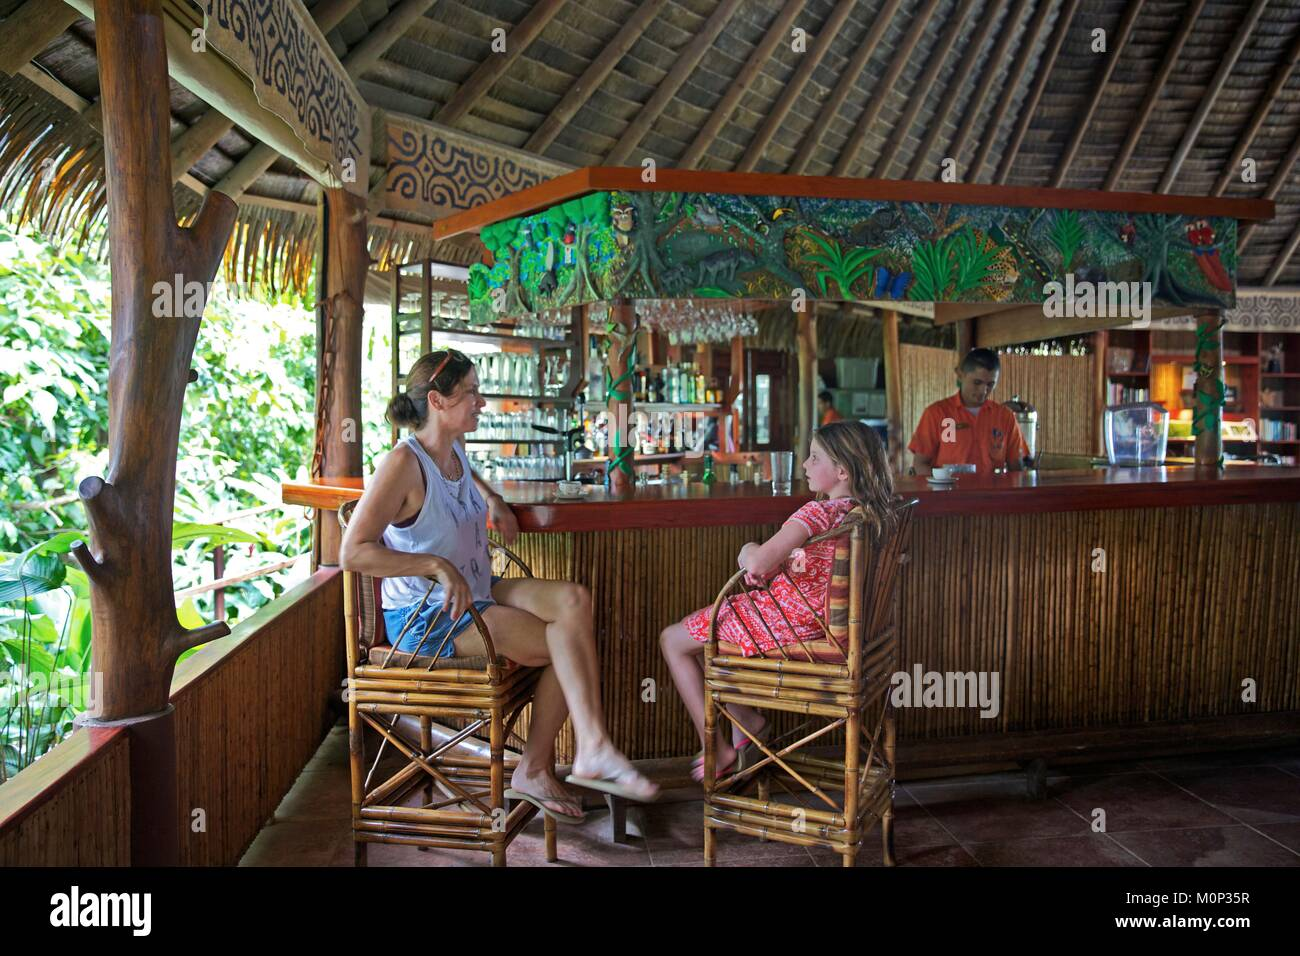 Costa Rica Osa Peninsula Restaurant Of The Ecolodge Lapa Rios Topped Stock Photo Alamy